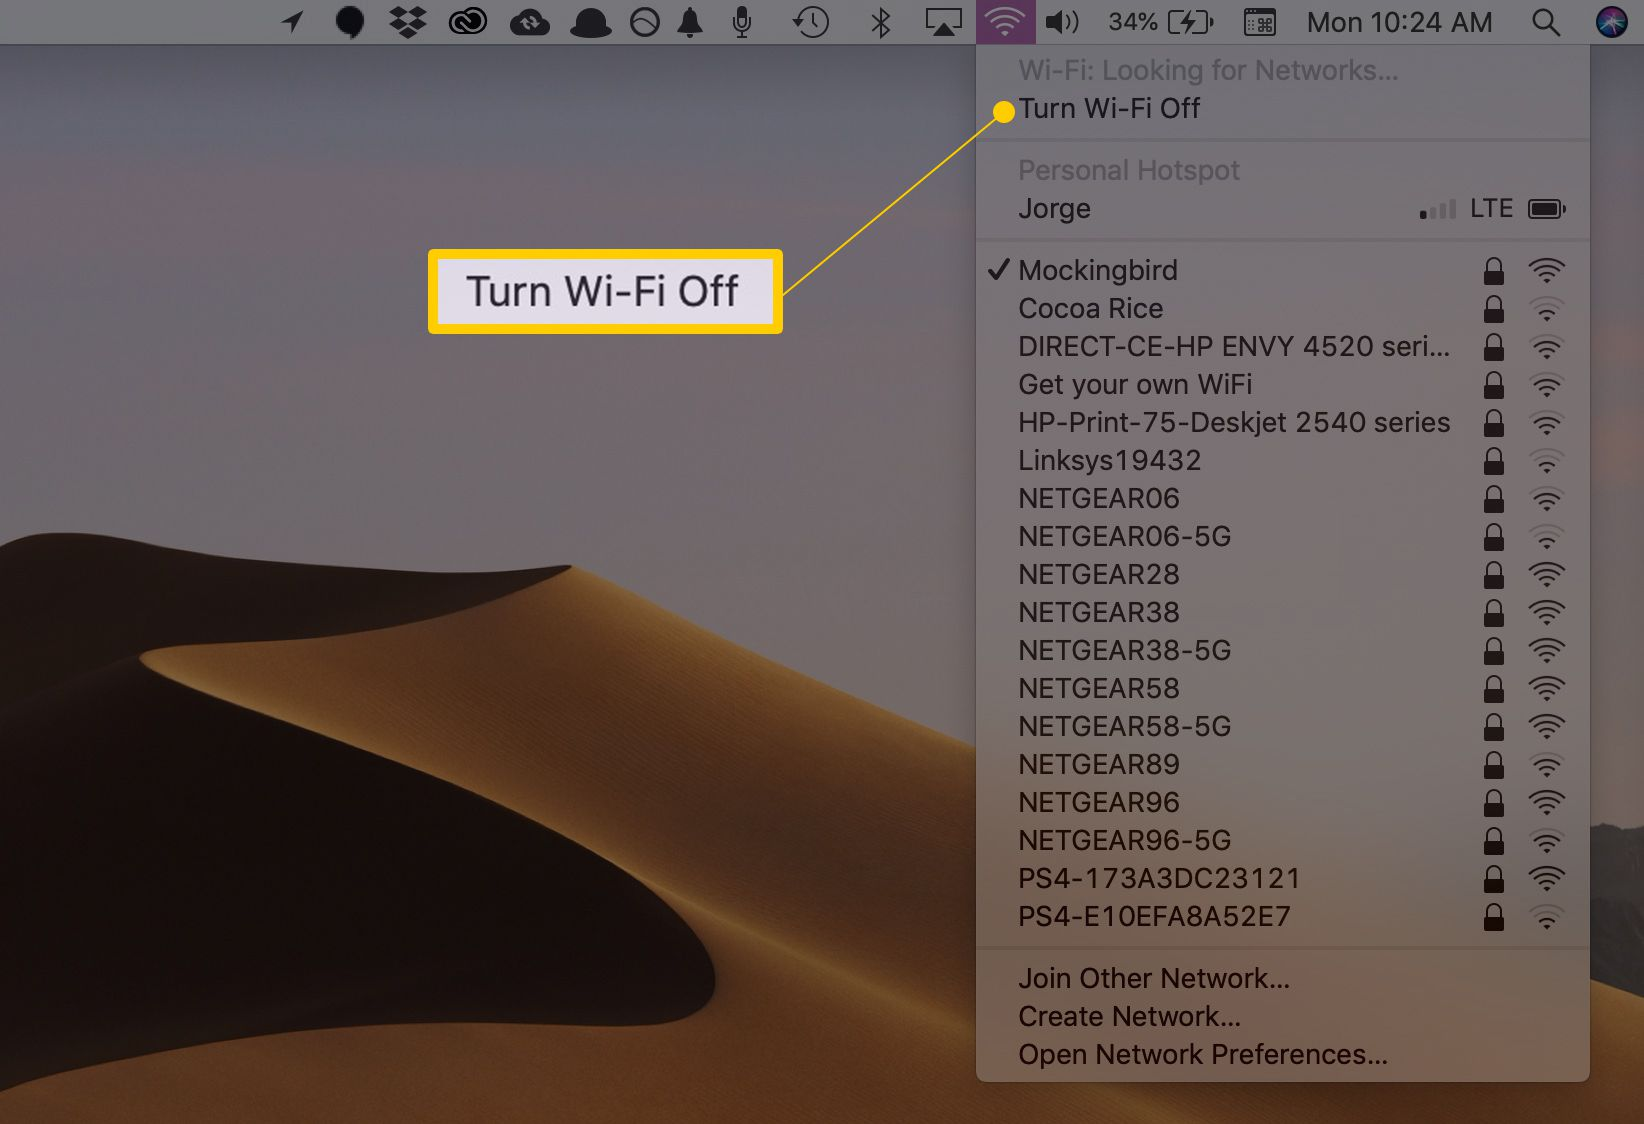 When and How to Turn Off Wi-Fi on Your Devices